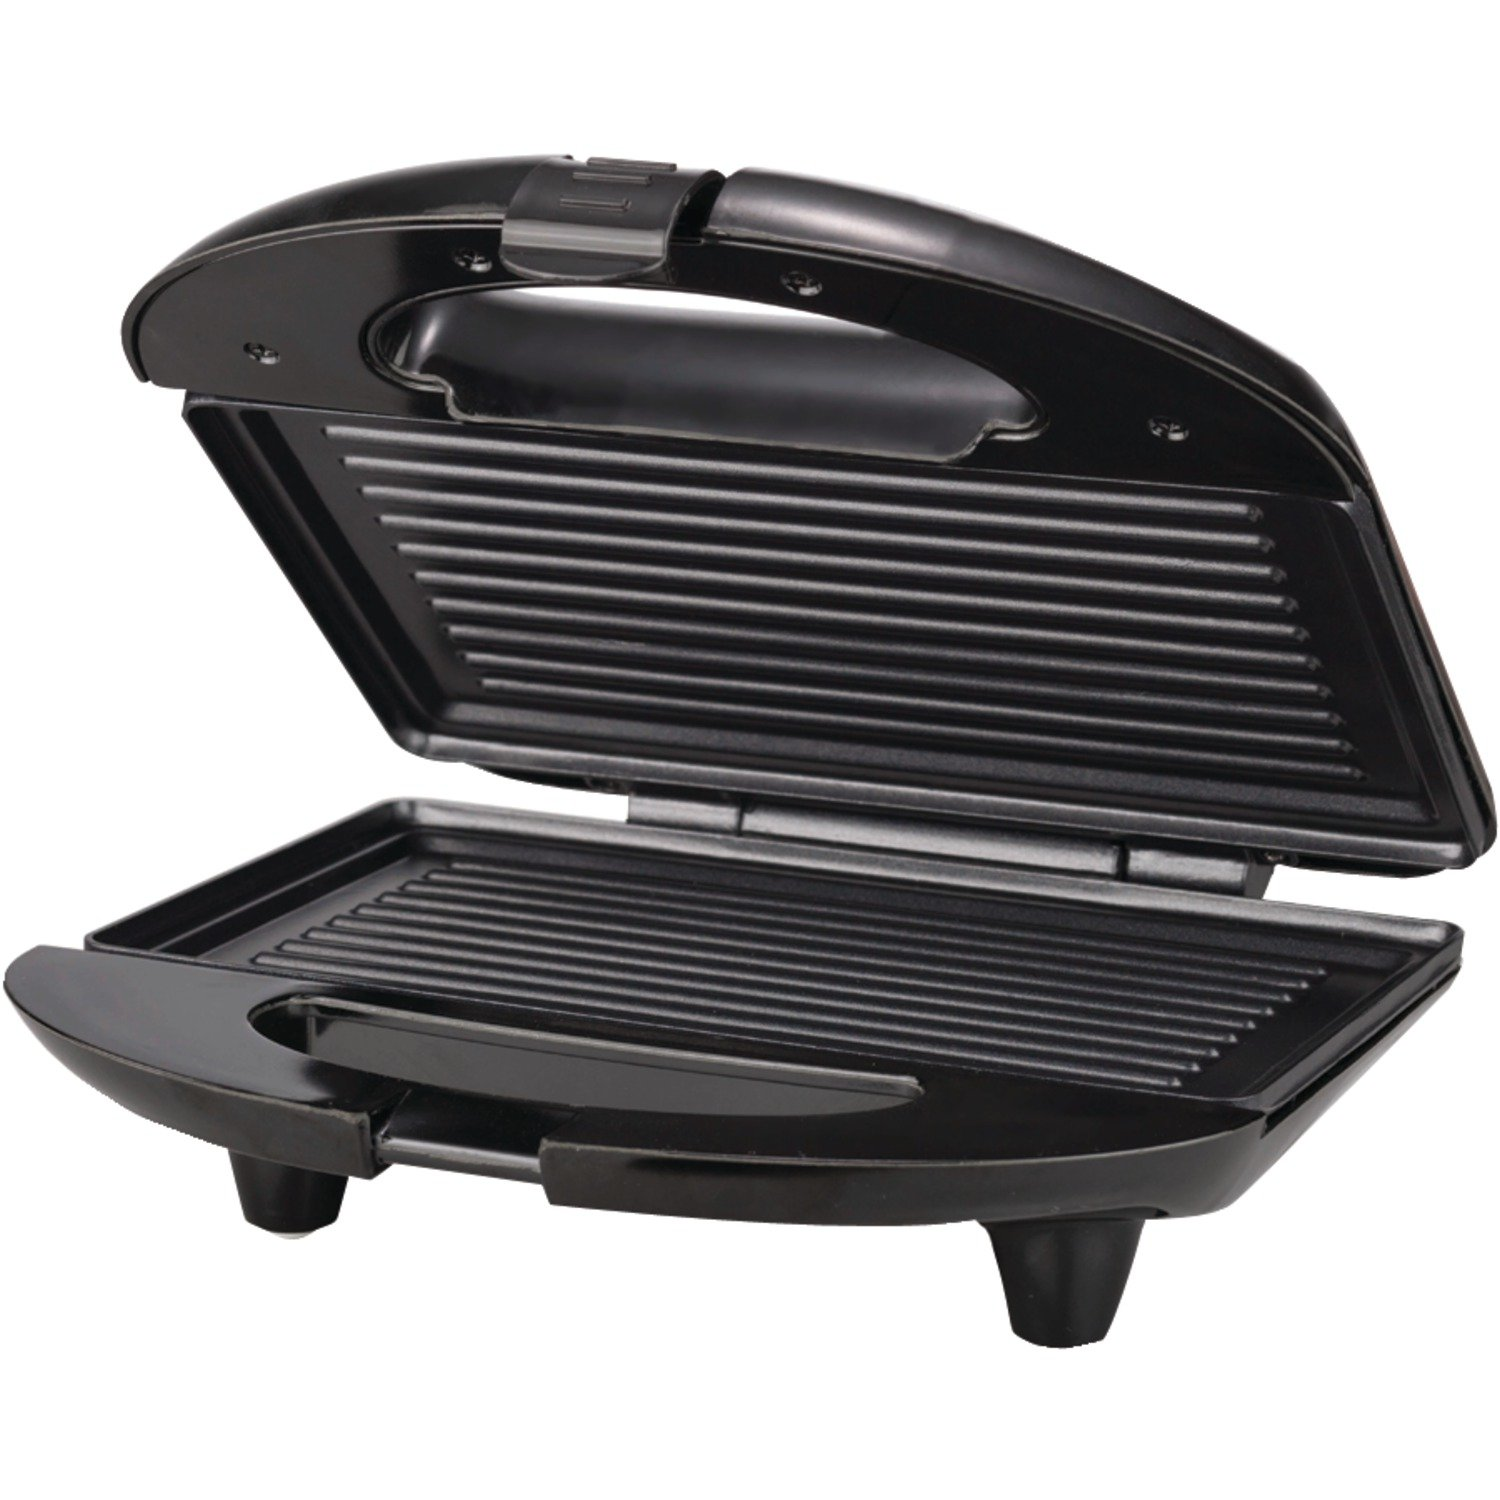 Brentwood TS-246 Panini Press and Sandwich Maker Non-Stick, Black by Brentwood